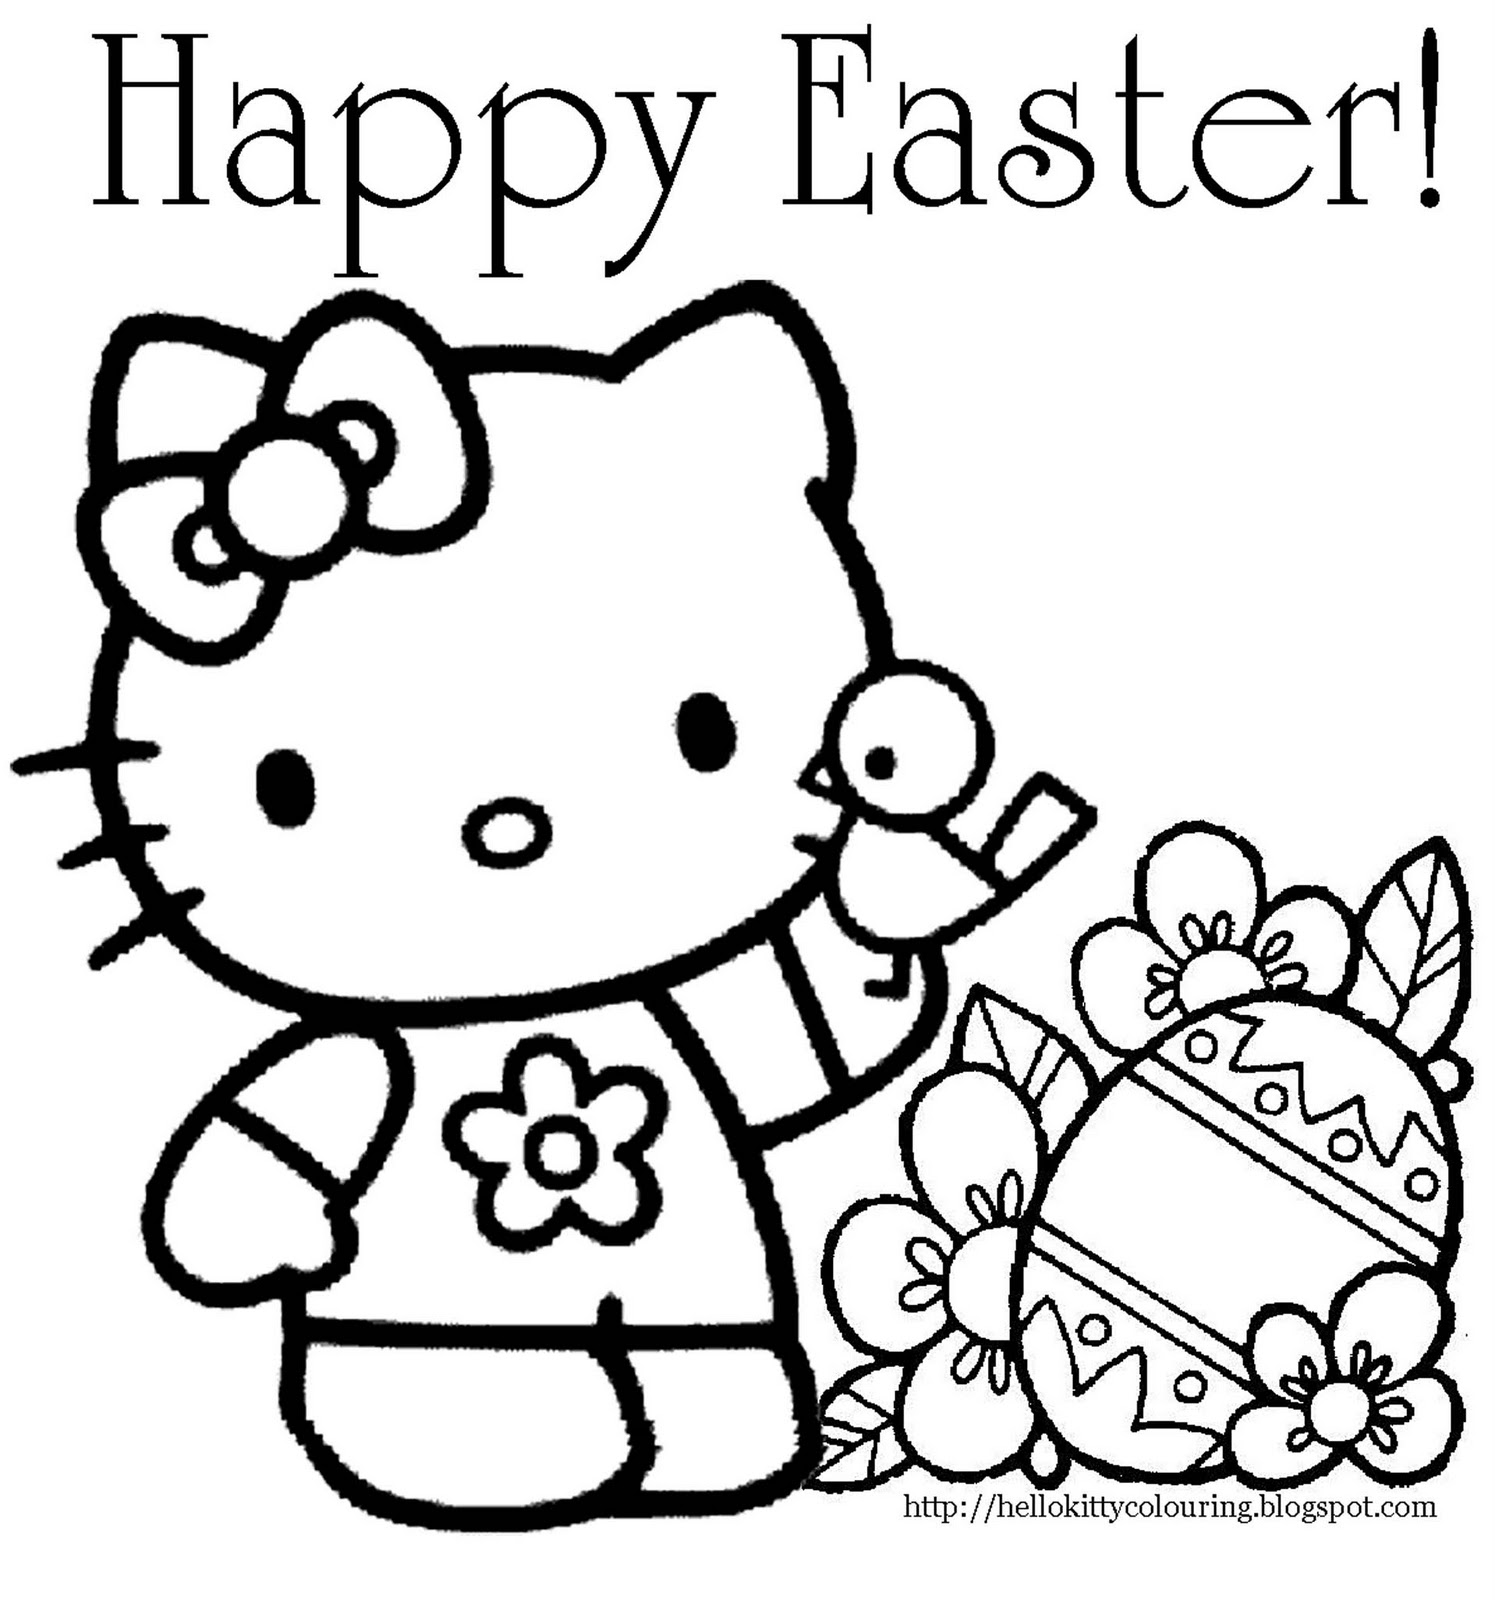 free hello kitty coloring pages - Free Printable Hello Kitty Coloring Pages For Kids